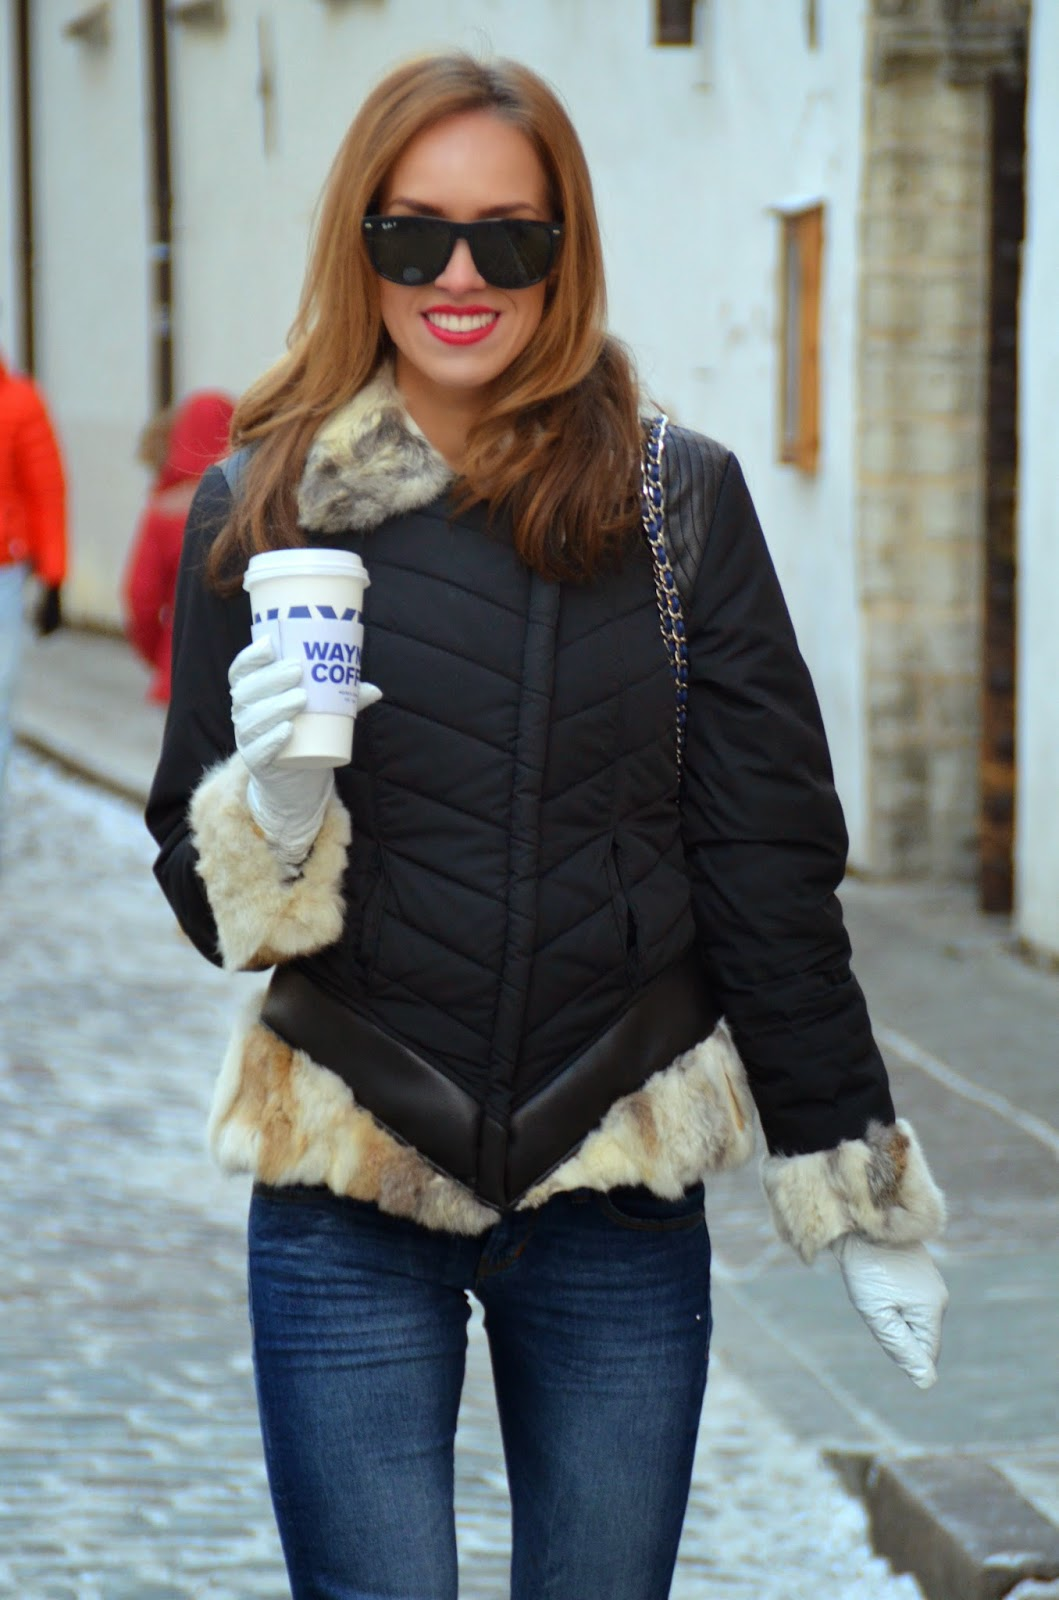 ray-ban-sunglasses-rino-pelle-jacket-guess-jeans-winter-outfit